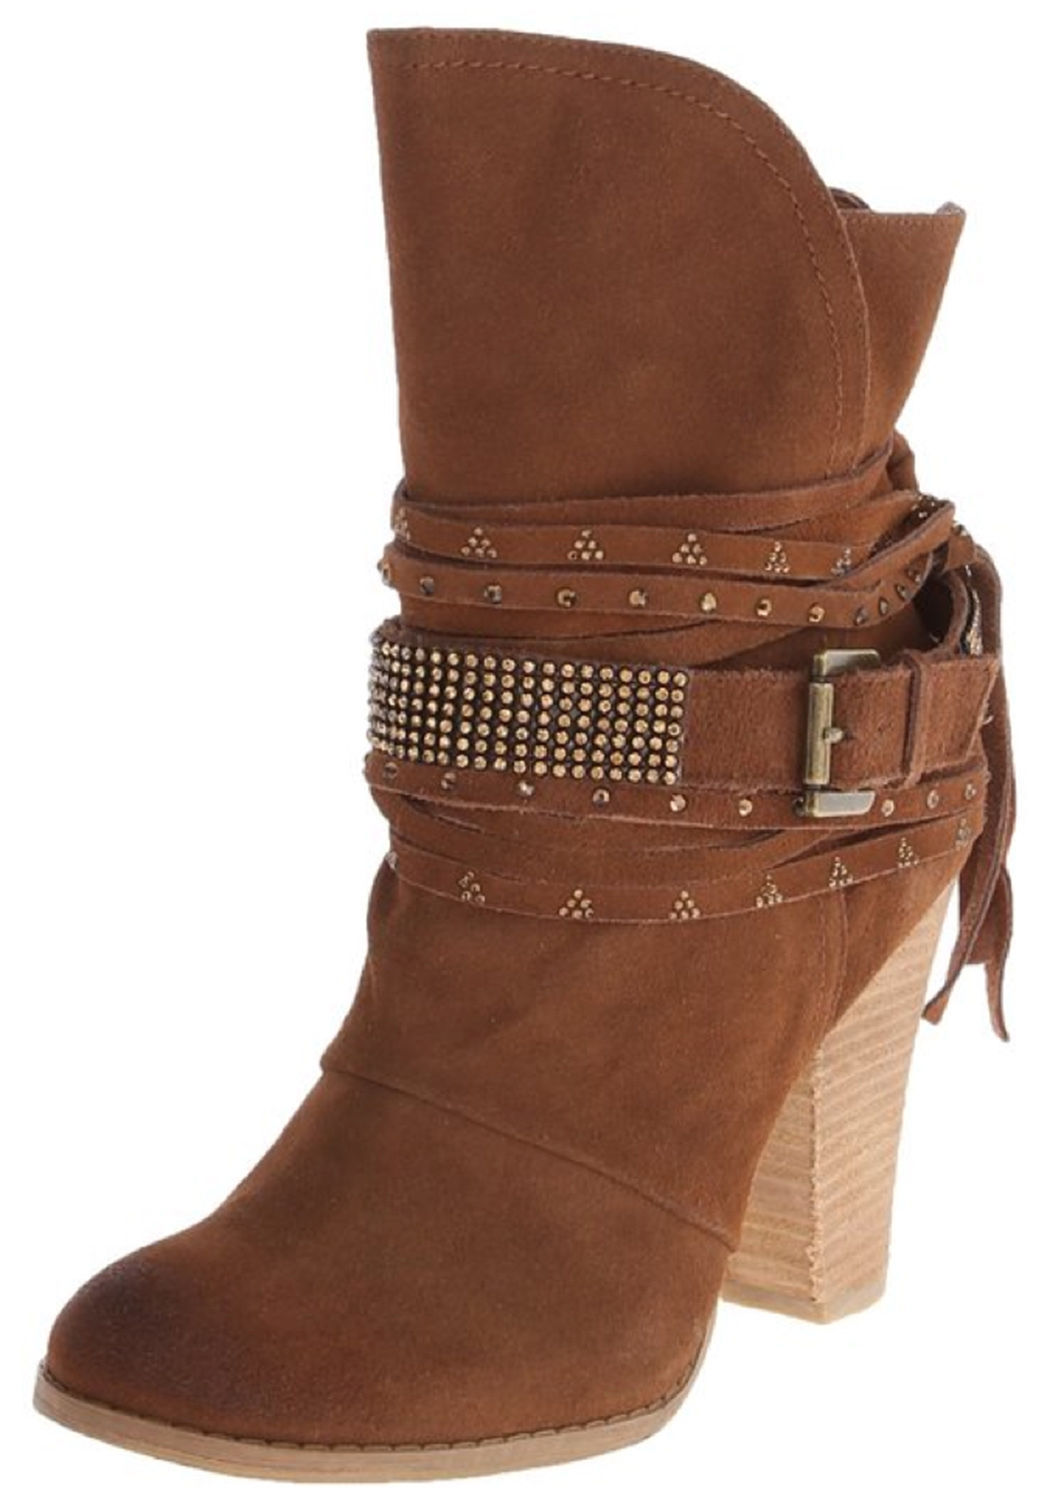 monkey boots suede leather jeweled studded ankle